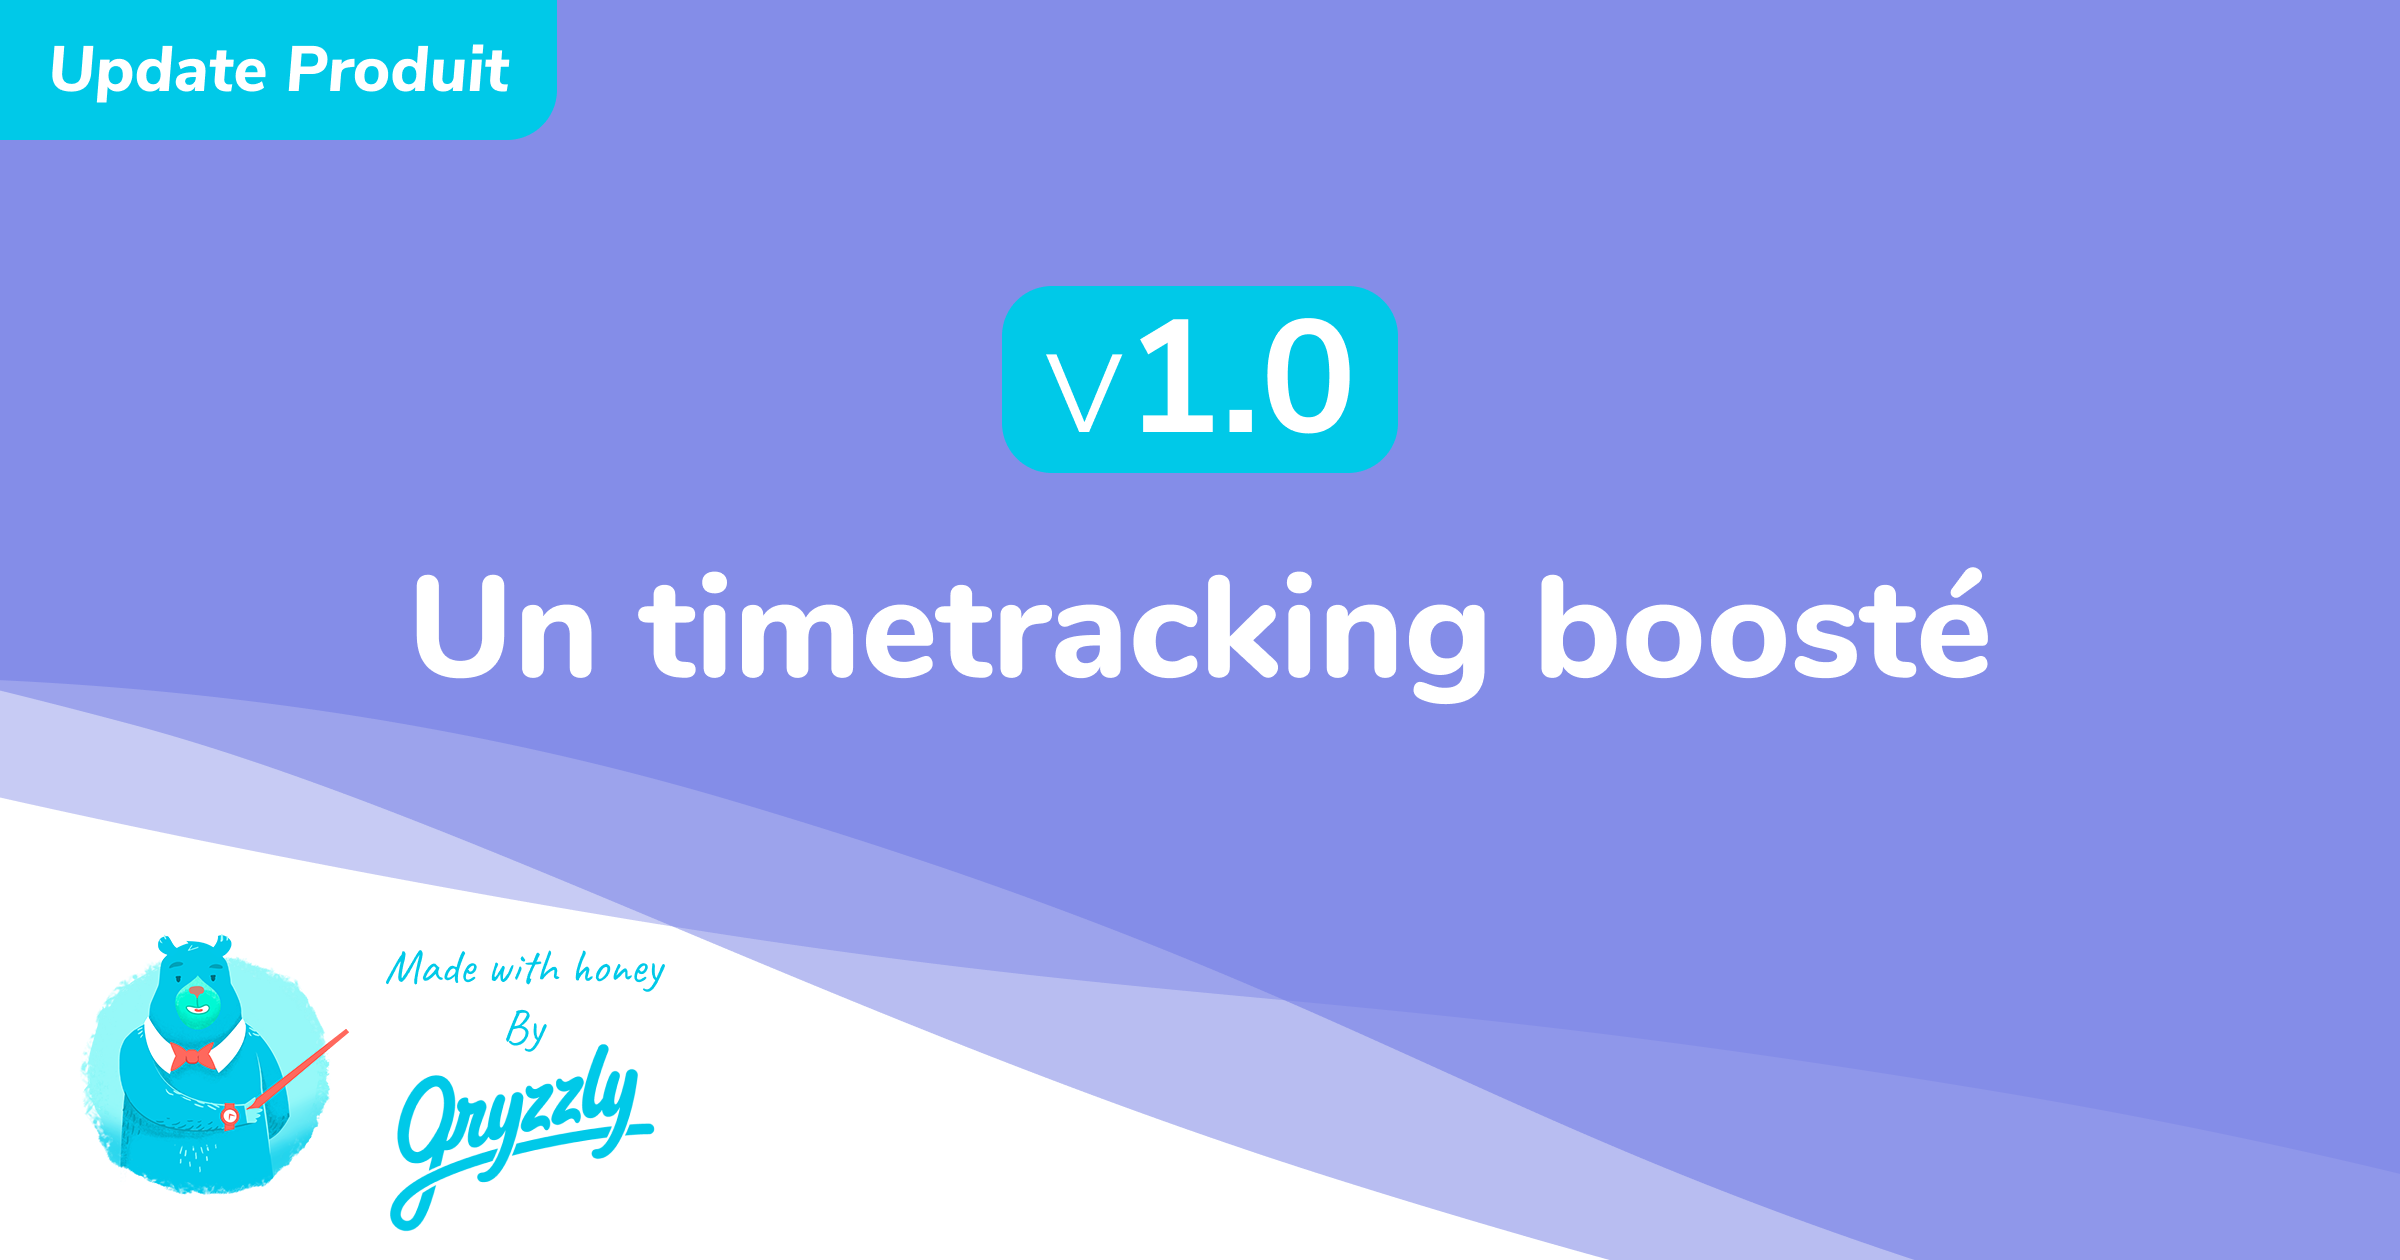 Update produit : Gryzzly Time v1.0 - un timetracking boosté